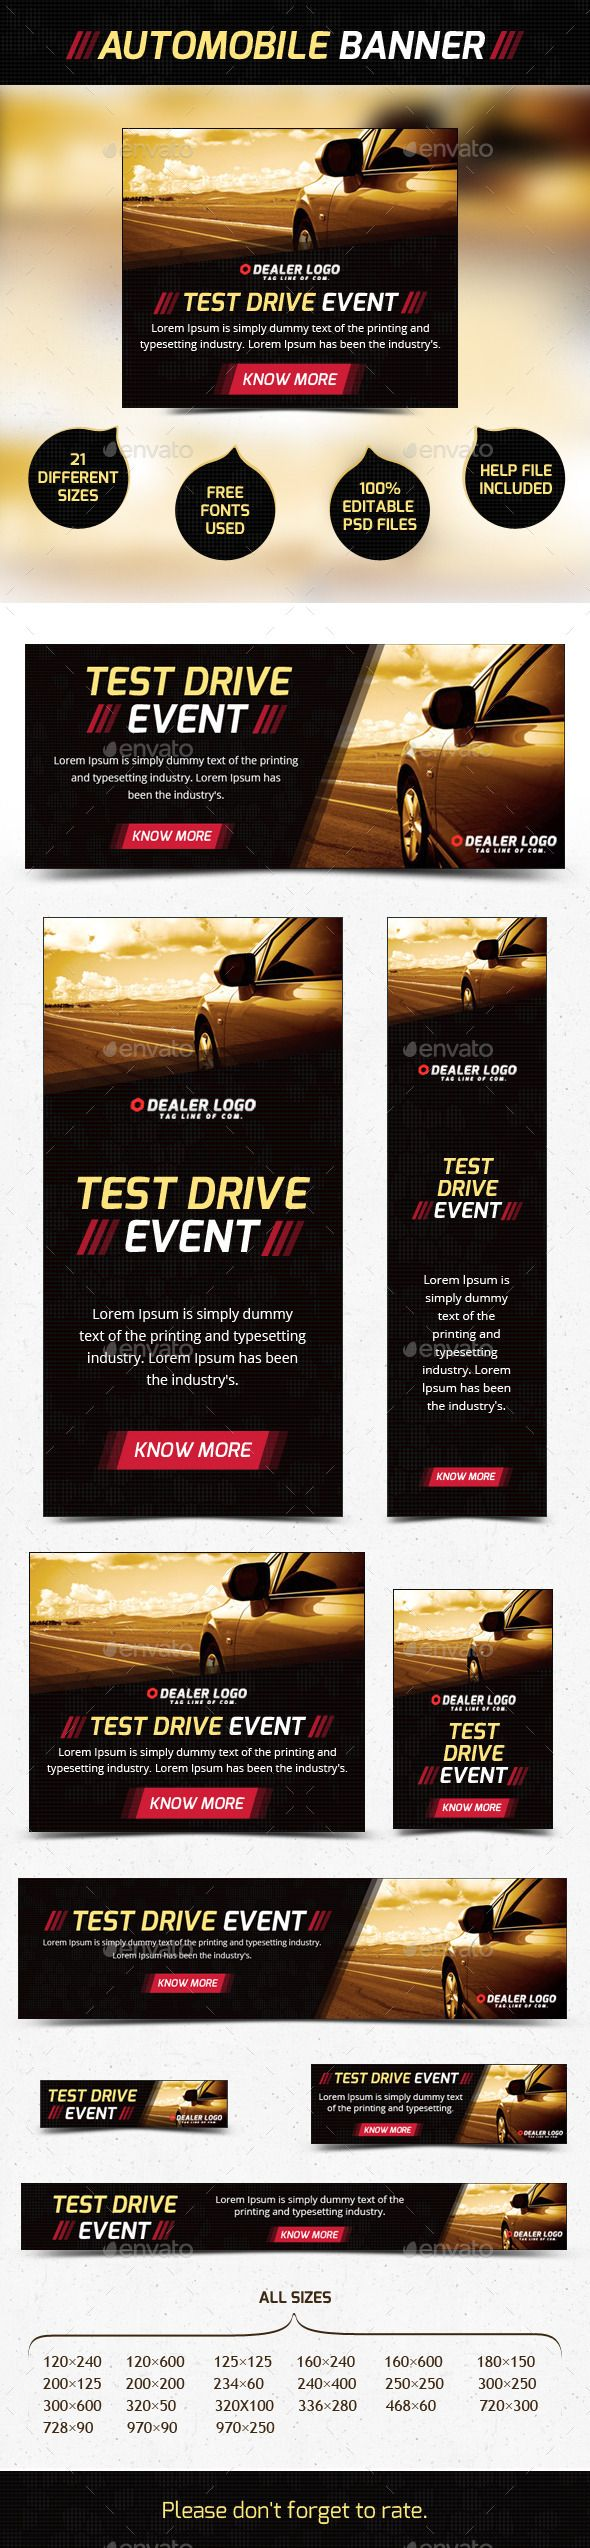 Car Web Banner Ad Template PSD | Buy and Download: http://graphicriver.net/item/car-banner-ad/9109412?WT.ac=category_thumb&WT.z_author=WebIncredible&ref=ksioks